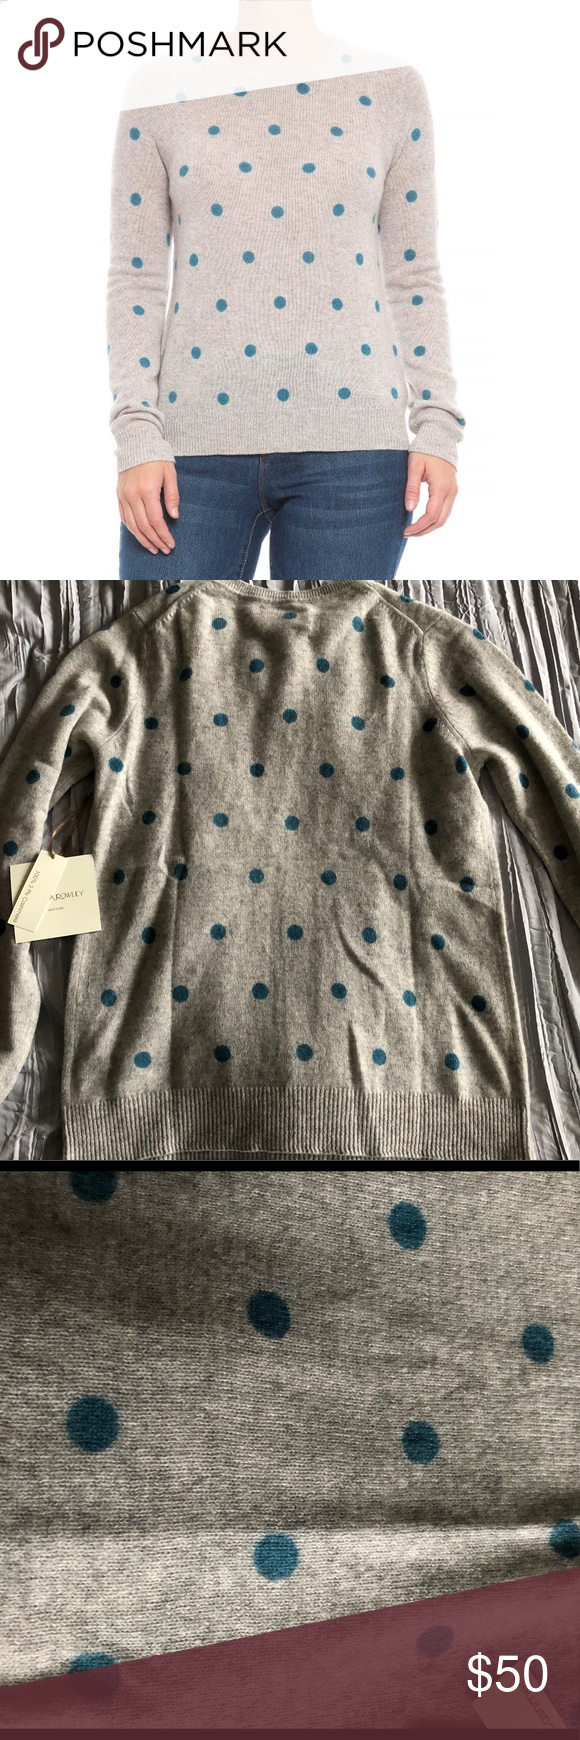 New Cynthia Rowley Cashmere Polka Dot Sweater New With Tags 2 Ply Cashmere Crew Neck Sweater Light Polka Dot Sweater Clothes Design Cynthia Rowley